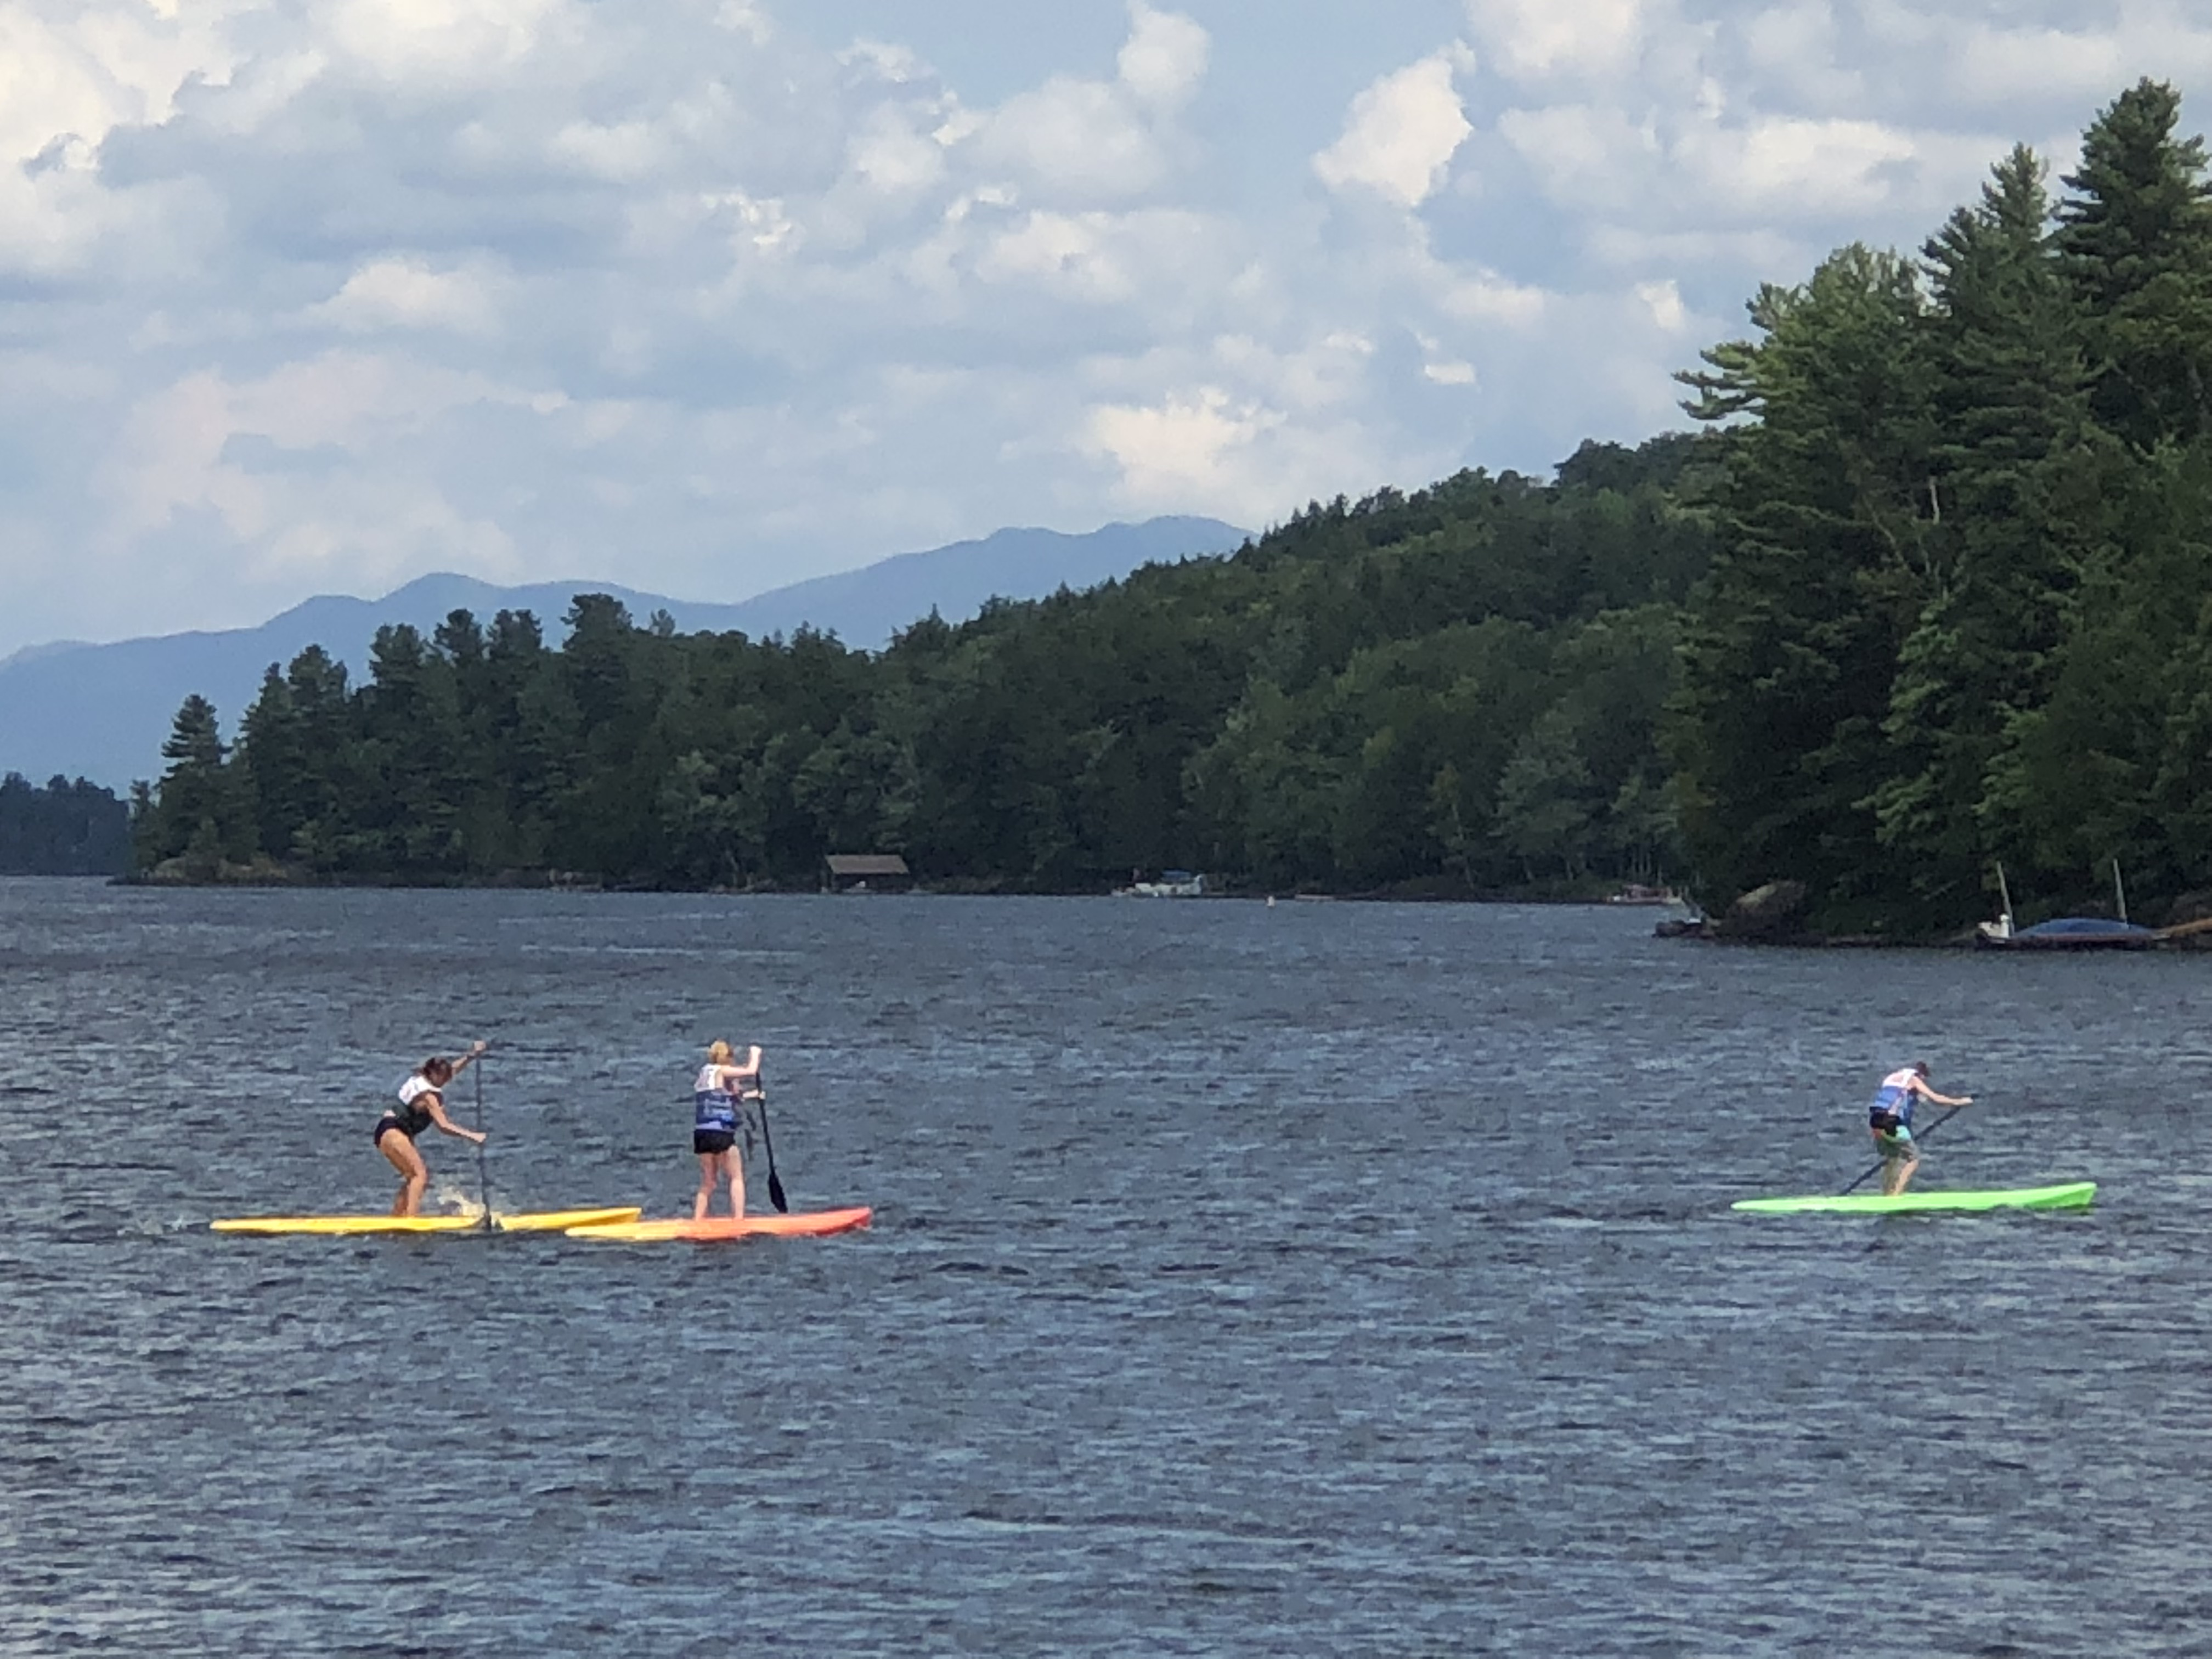 Paddling Olympic Competition